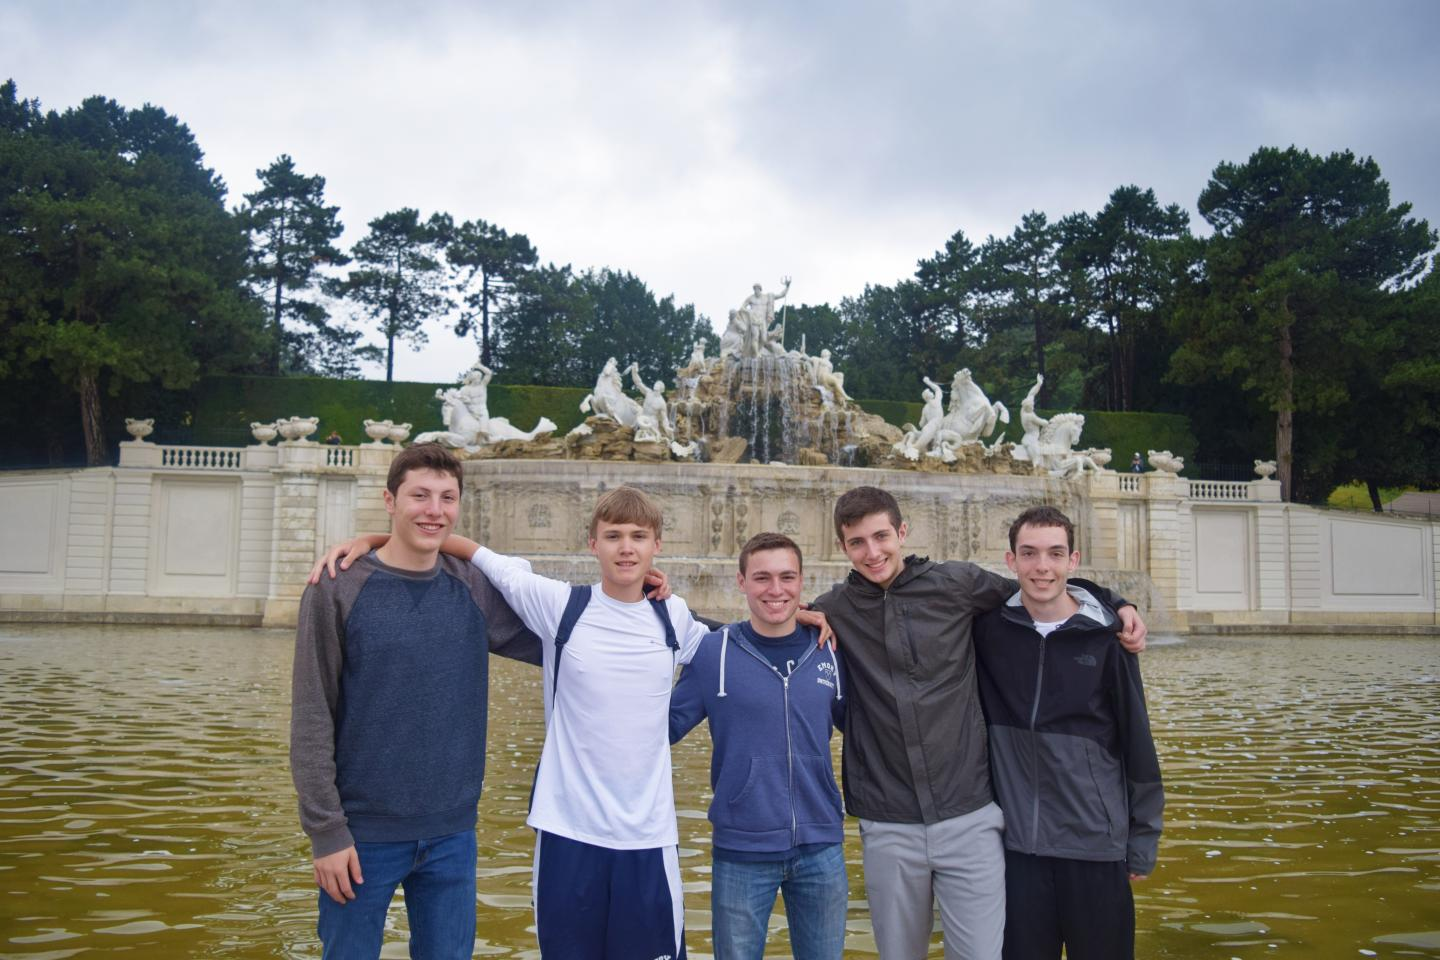 Teen travelers exploring Vienna during summer youth travel program